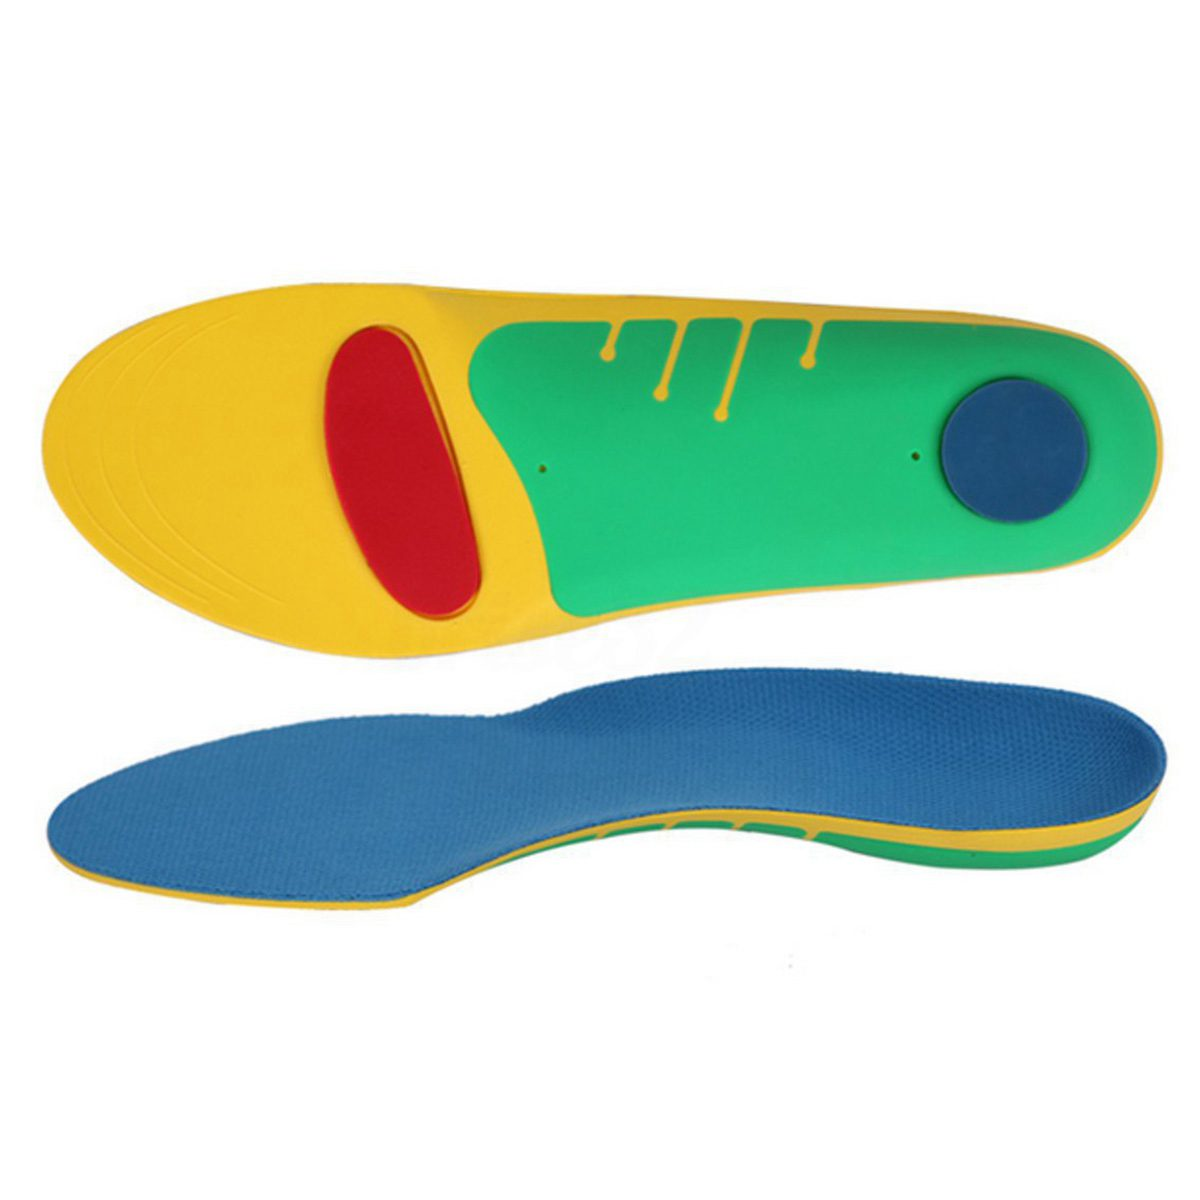 Fashion Boutique Pair Orthotic Shoes Insoles Insert High Arch Support Pad Accessory Women Men, L kotlikoff sport running insoles shoes insert orthotic arch support shoe foot pad cushion for shoes men women shoes accessories